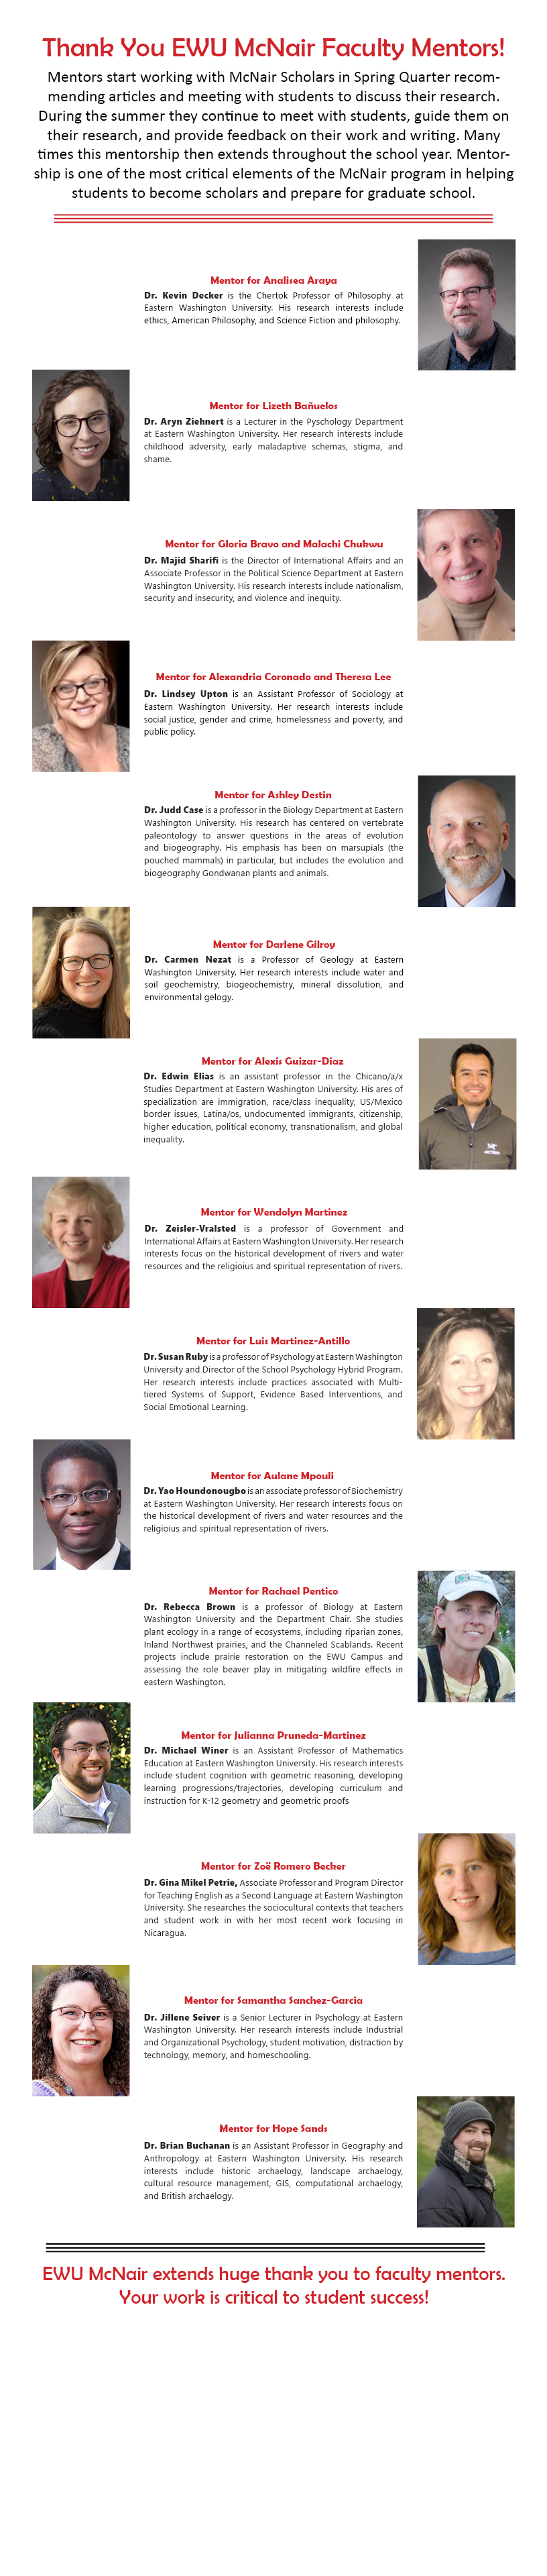 2020 New and Continuing EWU Faculty Mentors Acknowledgement